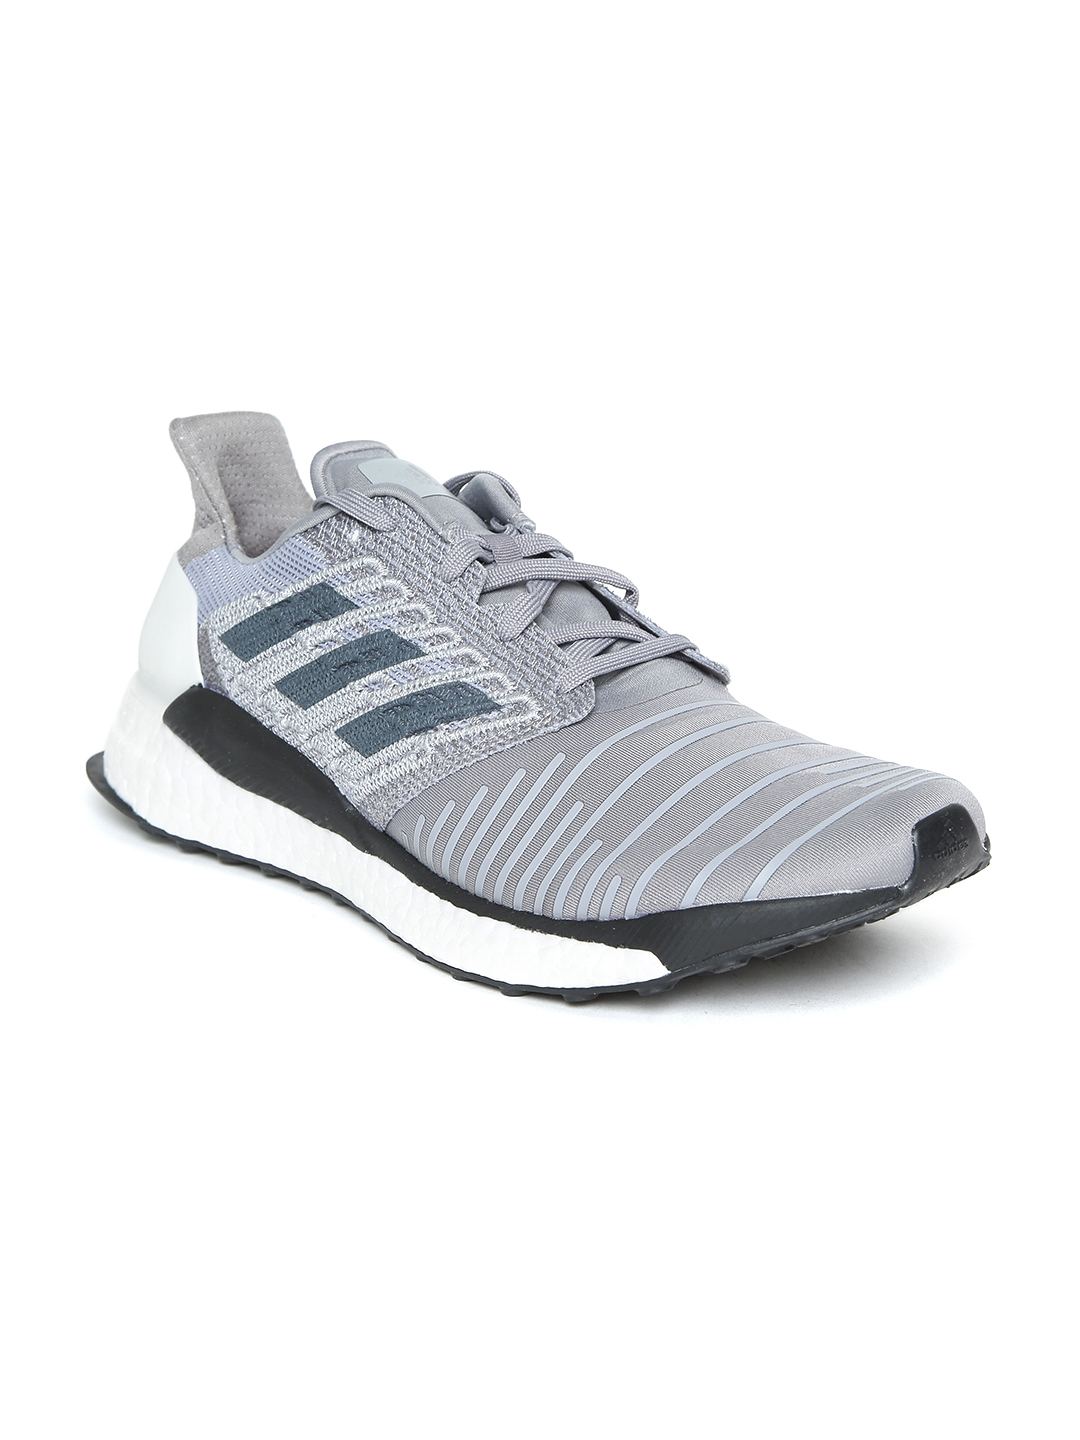 ba9cf01543d03 Buy ADIDAS Men Grey Solar Boost Running Shoes - Sports Shoes for Men ...